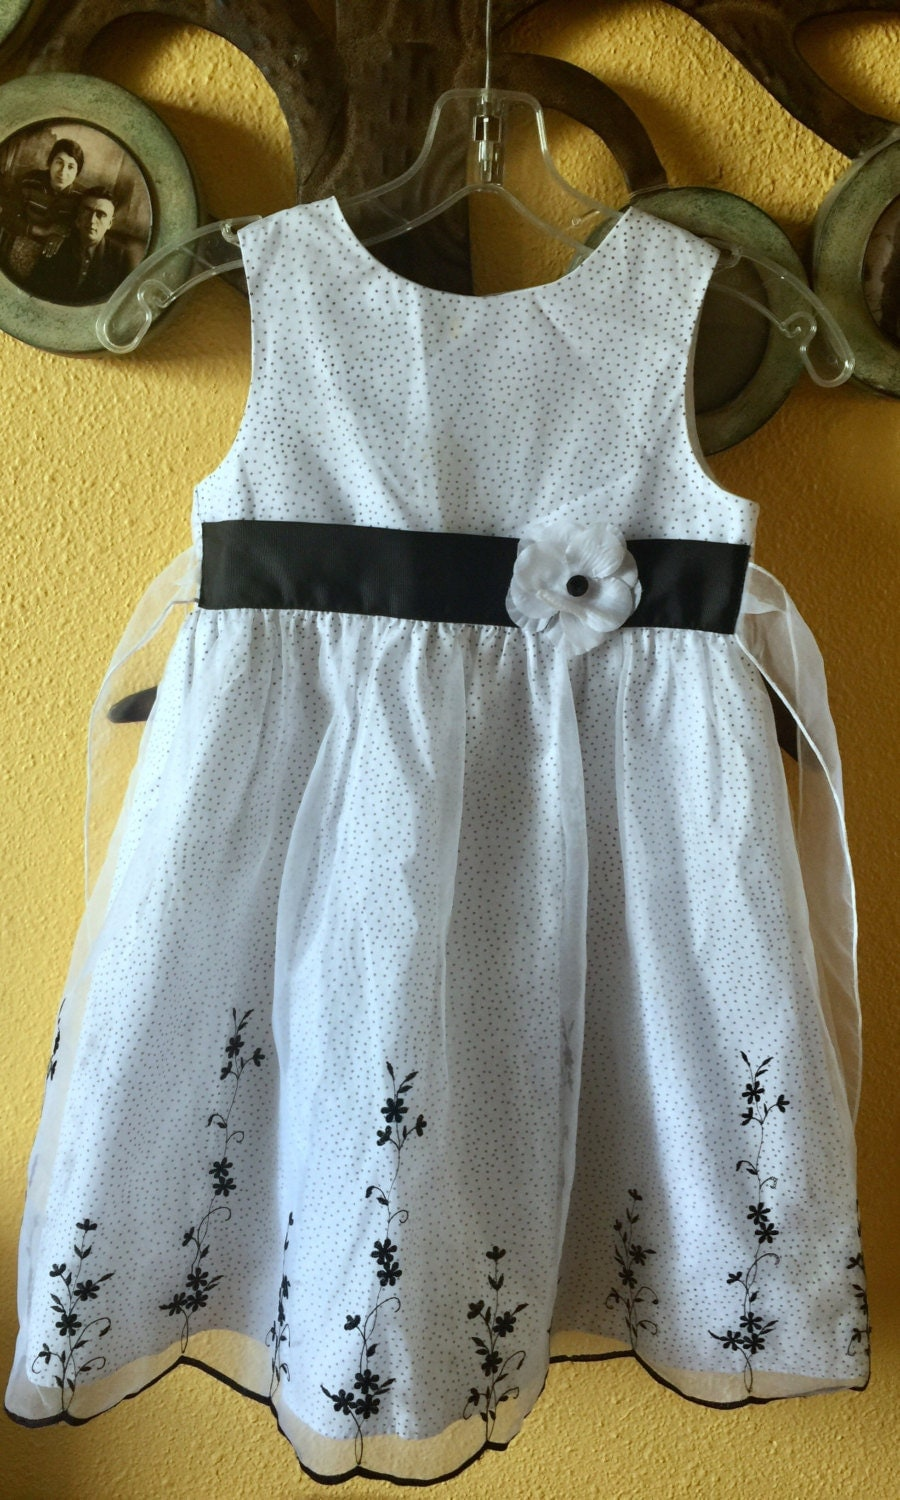 Baby Dress Toddler Black White Polka Dot Flower Girl Christening